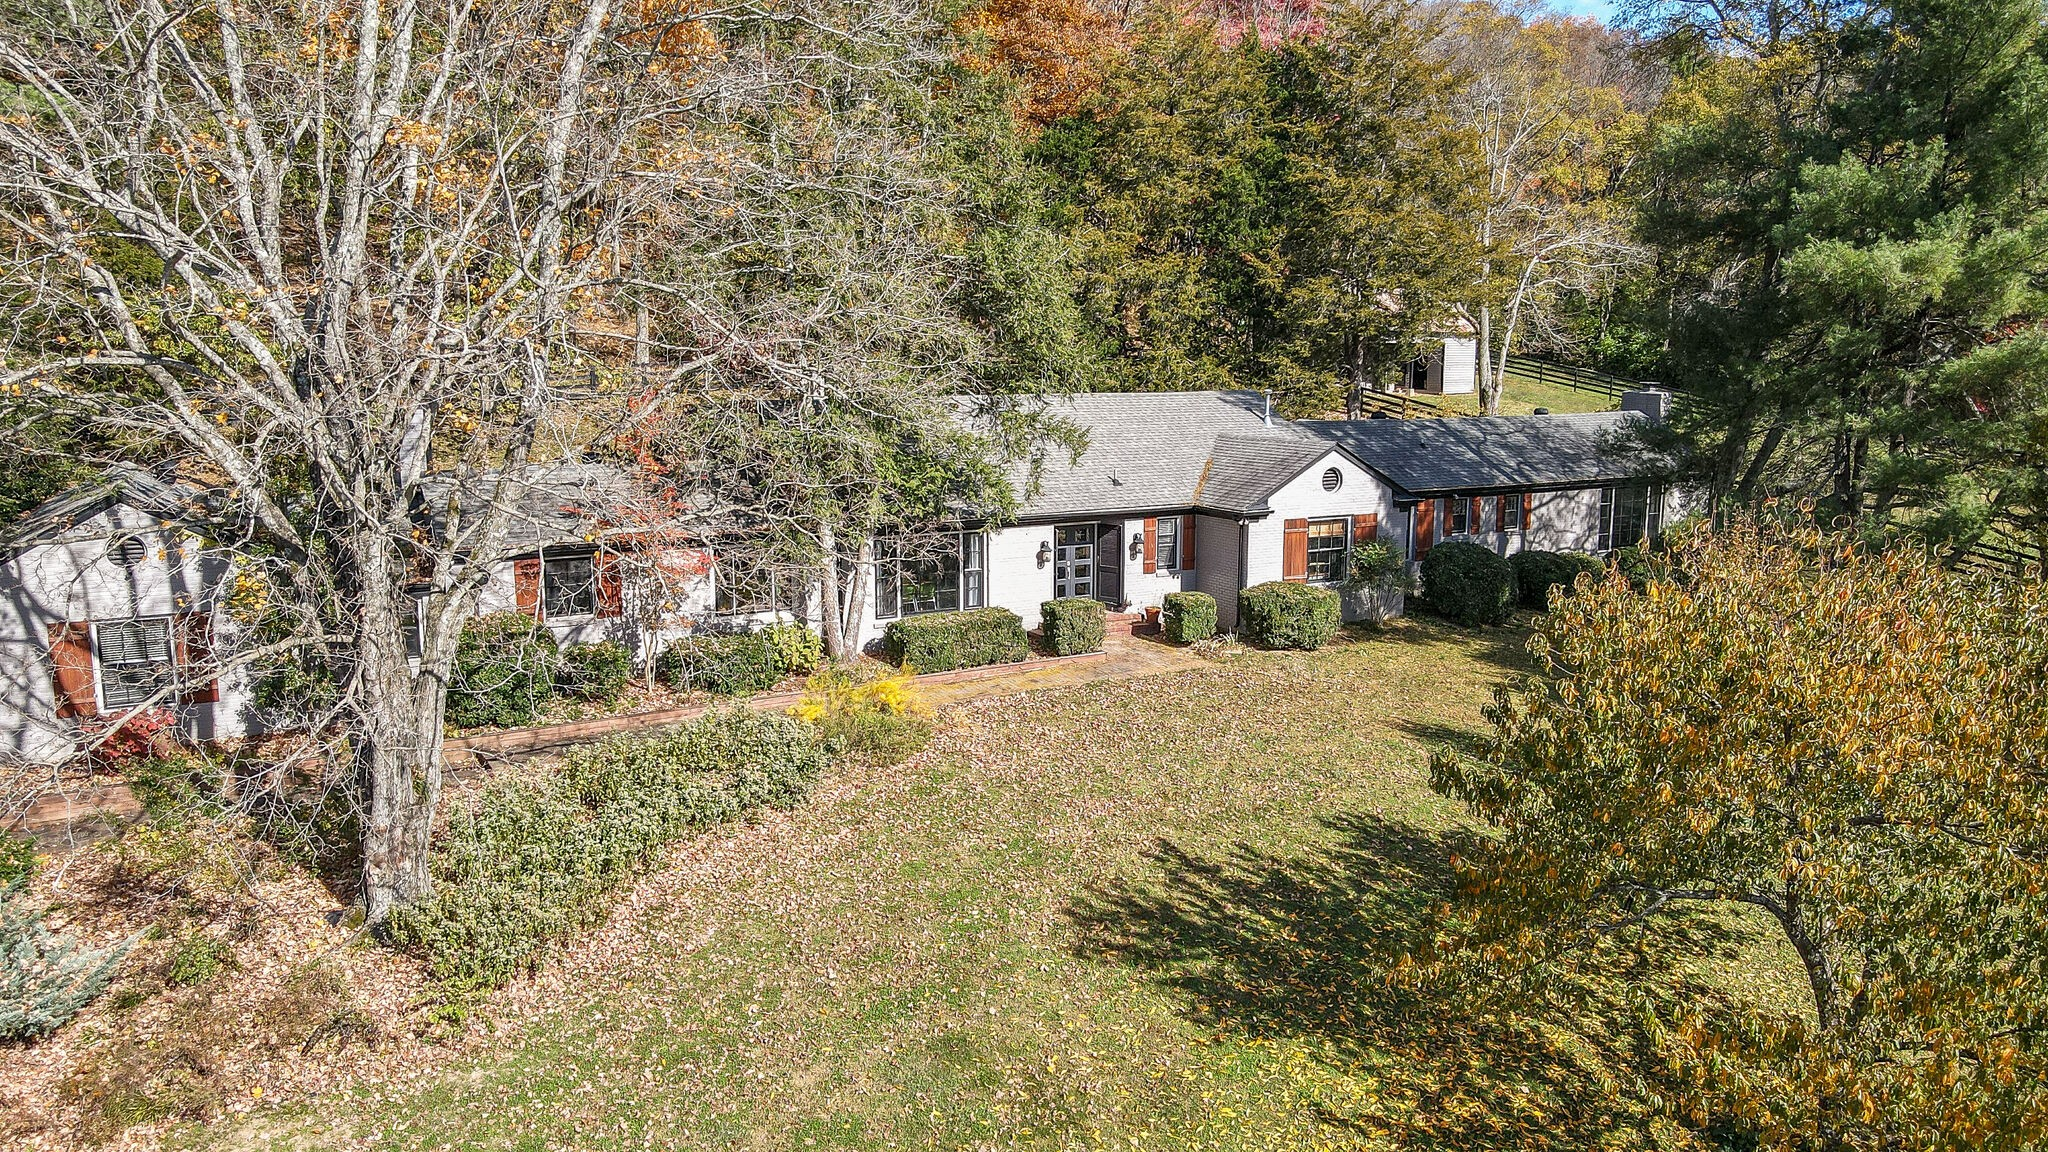 Truly amazing retreat nestled on 5 acres right in the city! One level living that has been mindfully renovated while keeping the charm and adding every modern convenience. Entertaining areas inside and out. Rare opportunity in this location to bring your horses ~ 2 stall barn and chicken coop. First showing Monday, Nov 16th